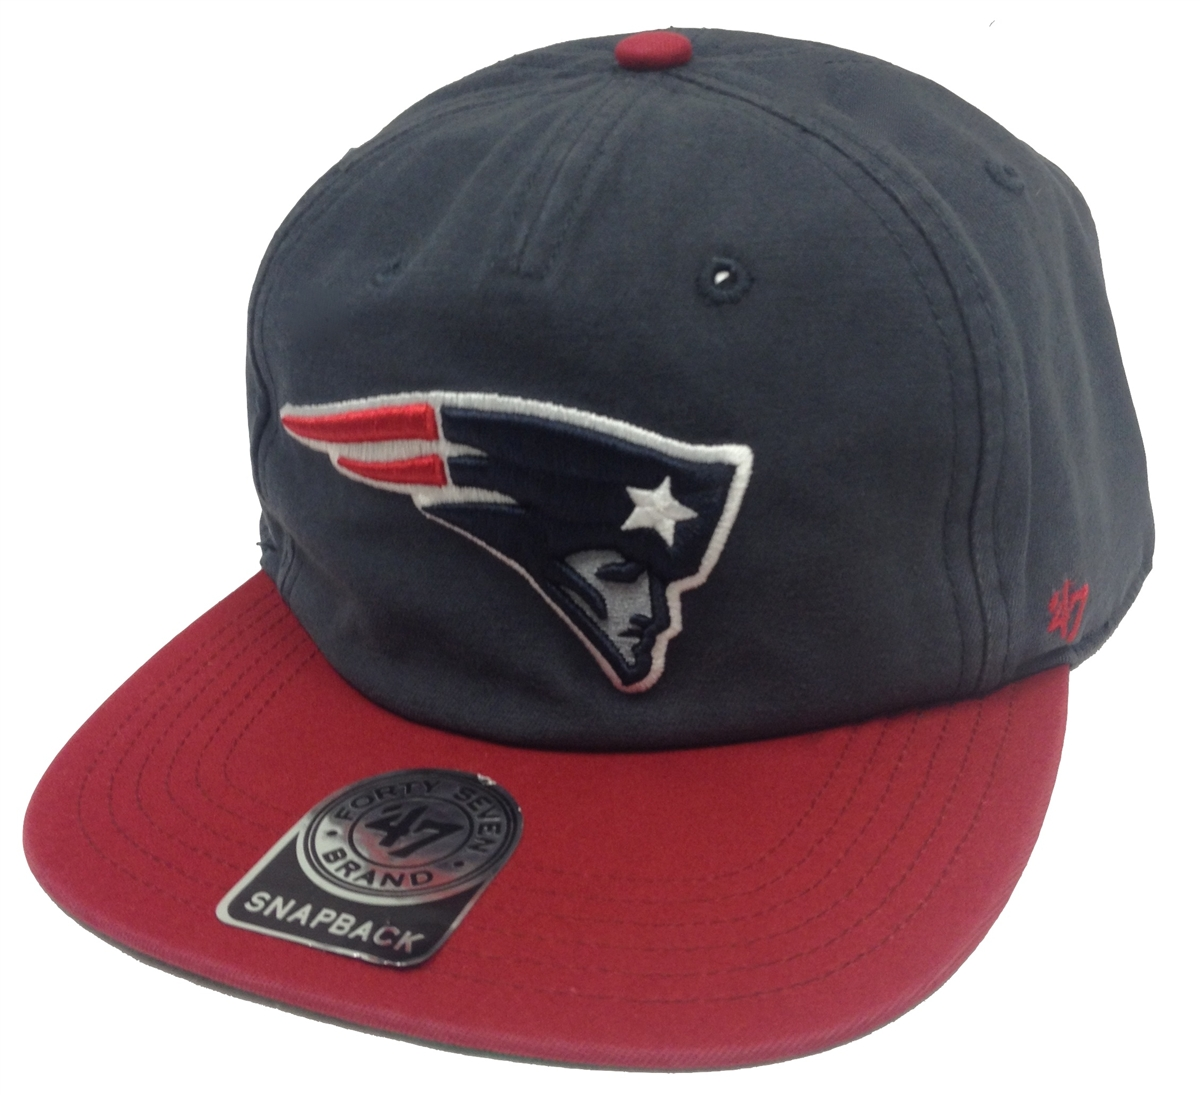 The 47 Brand Marvin New England Patriots Navy & Red Snapback